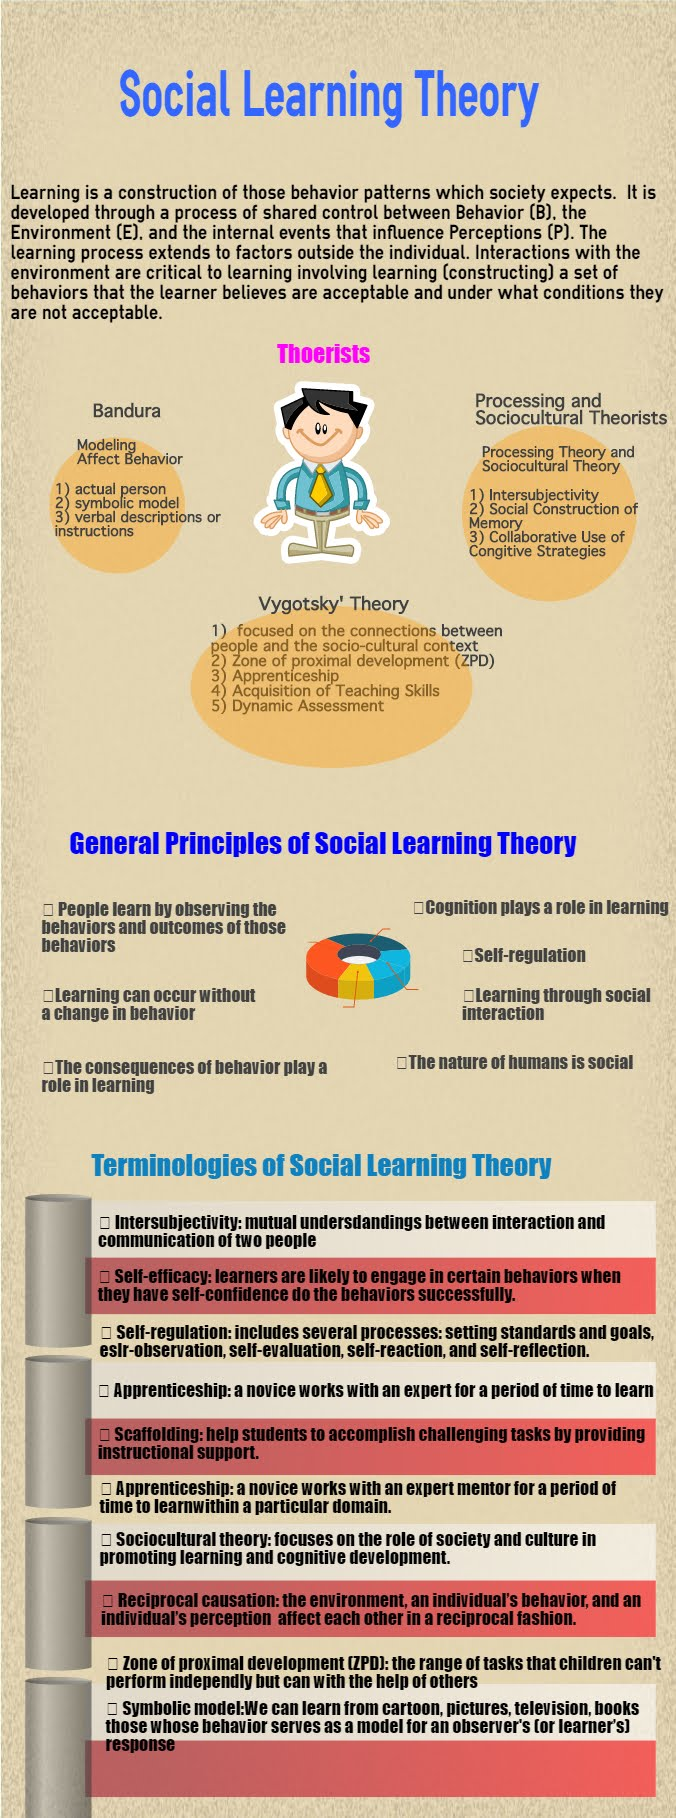 Social Learning Theory Infographic 1 Knowledge Base By Mei Hu